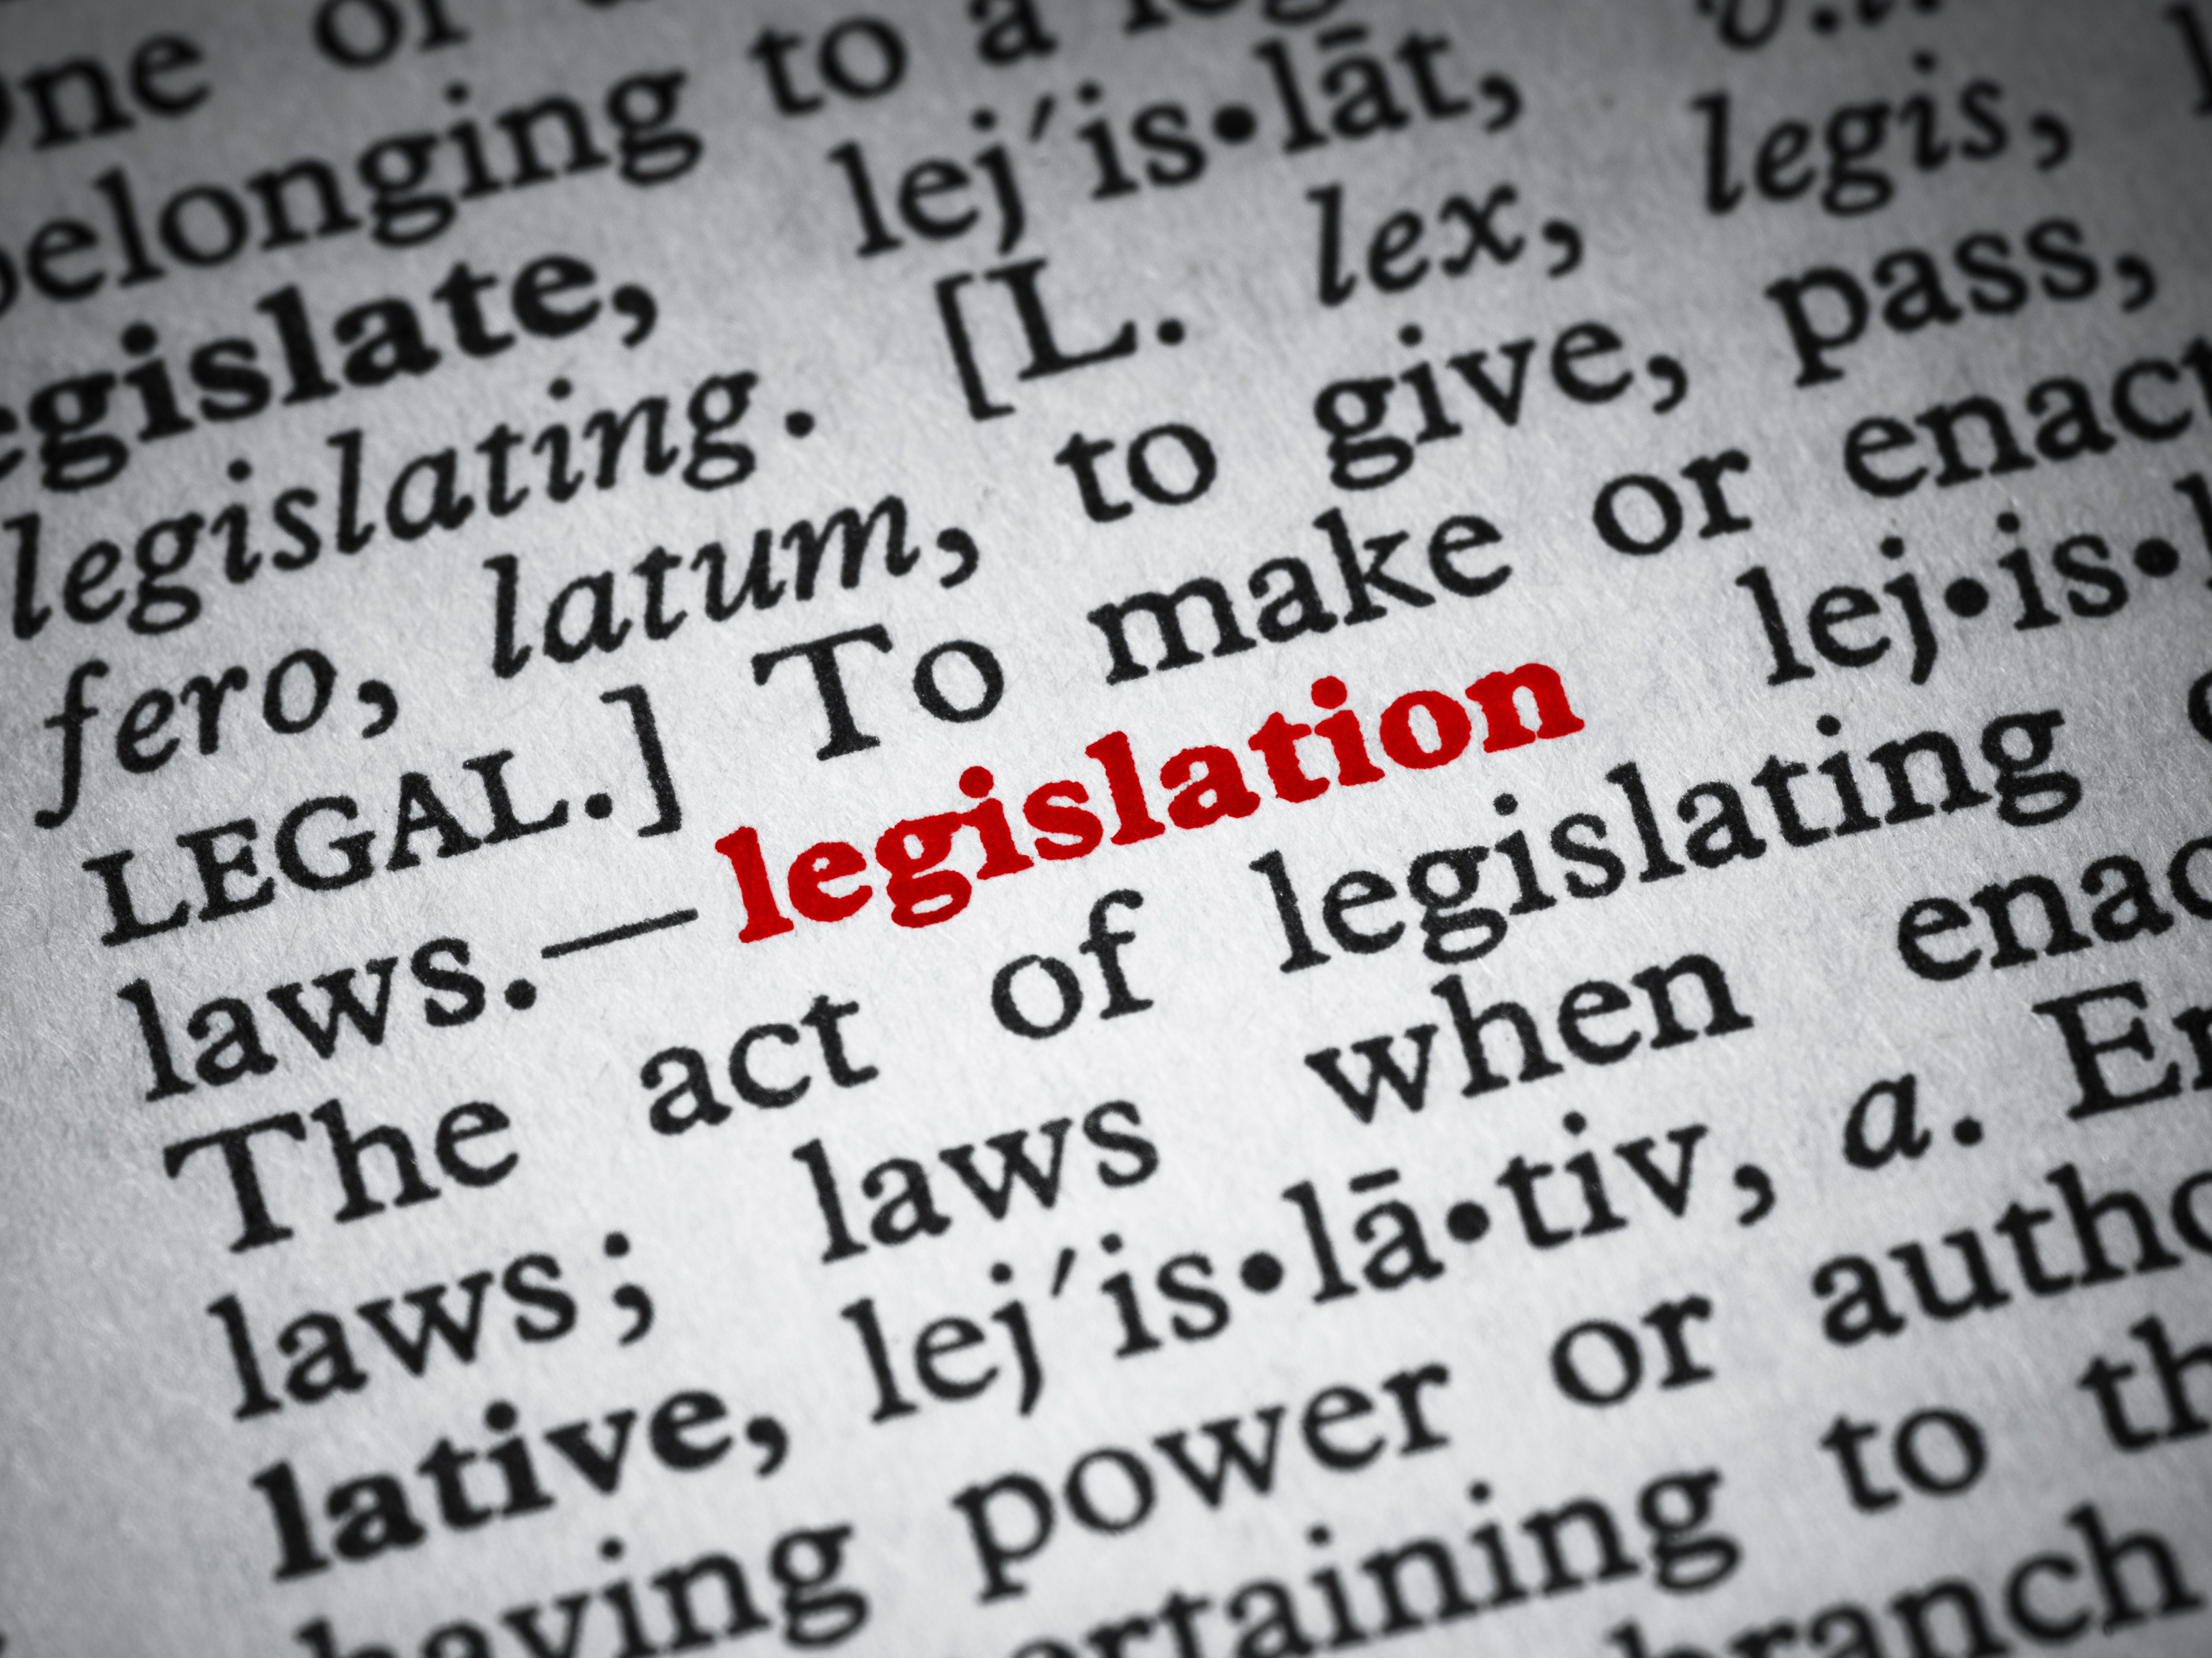 Dictionary definition of legislation